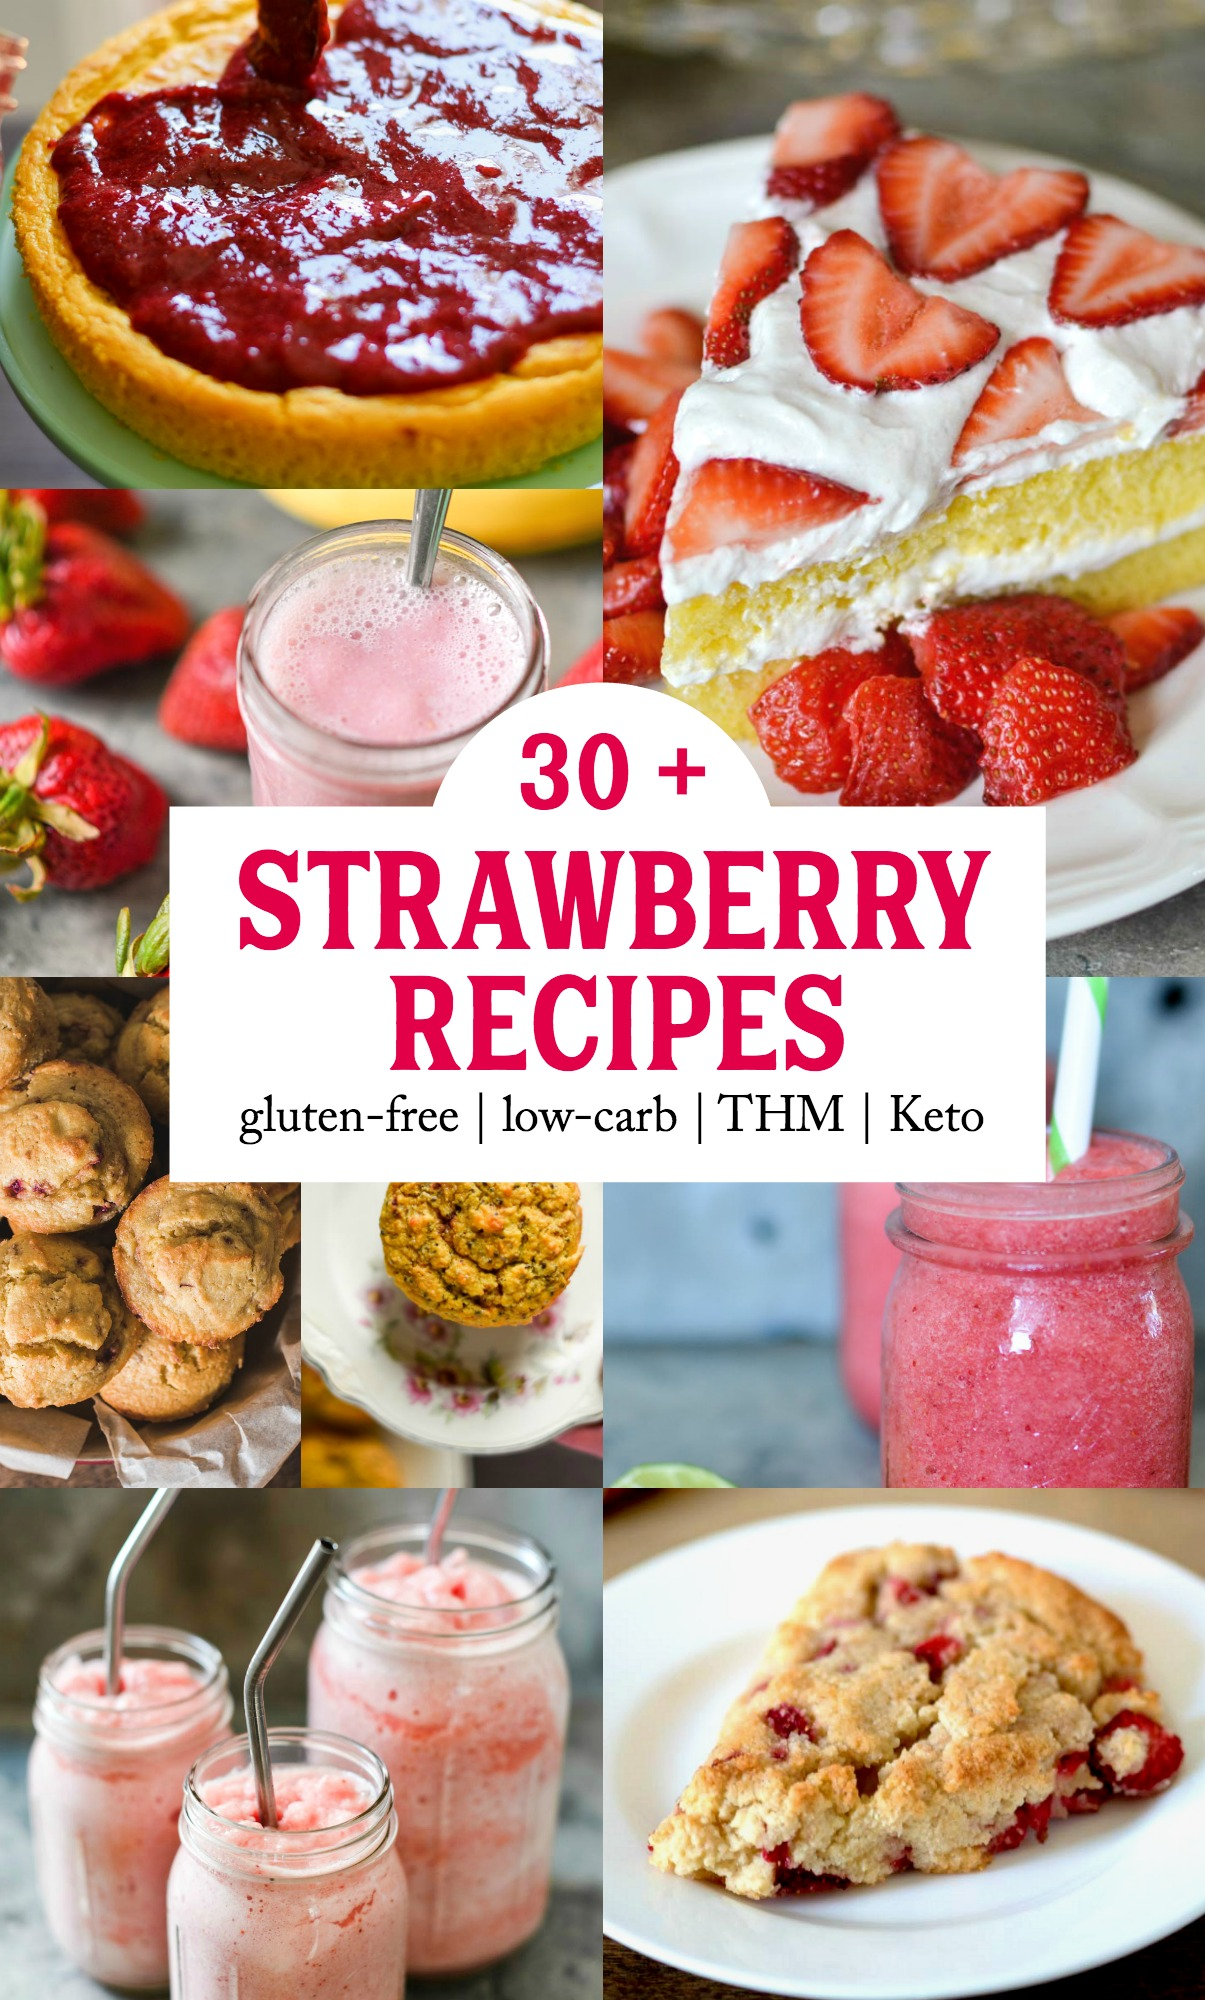 30+ Healthy Strawberry Recipes